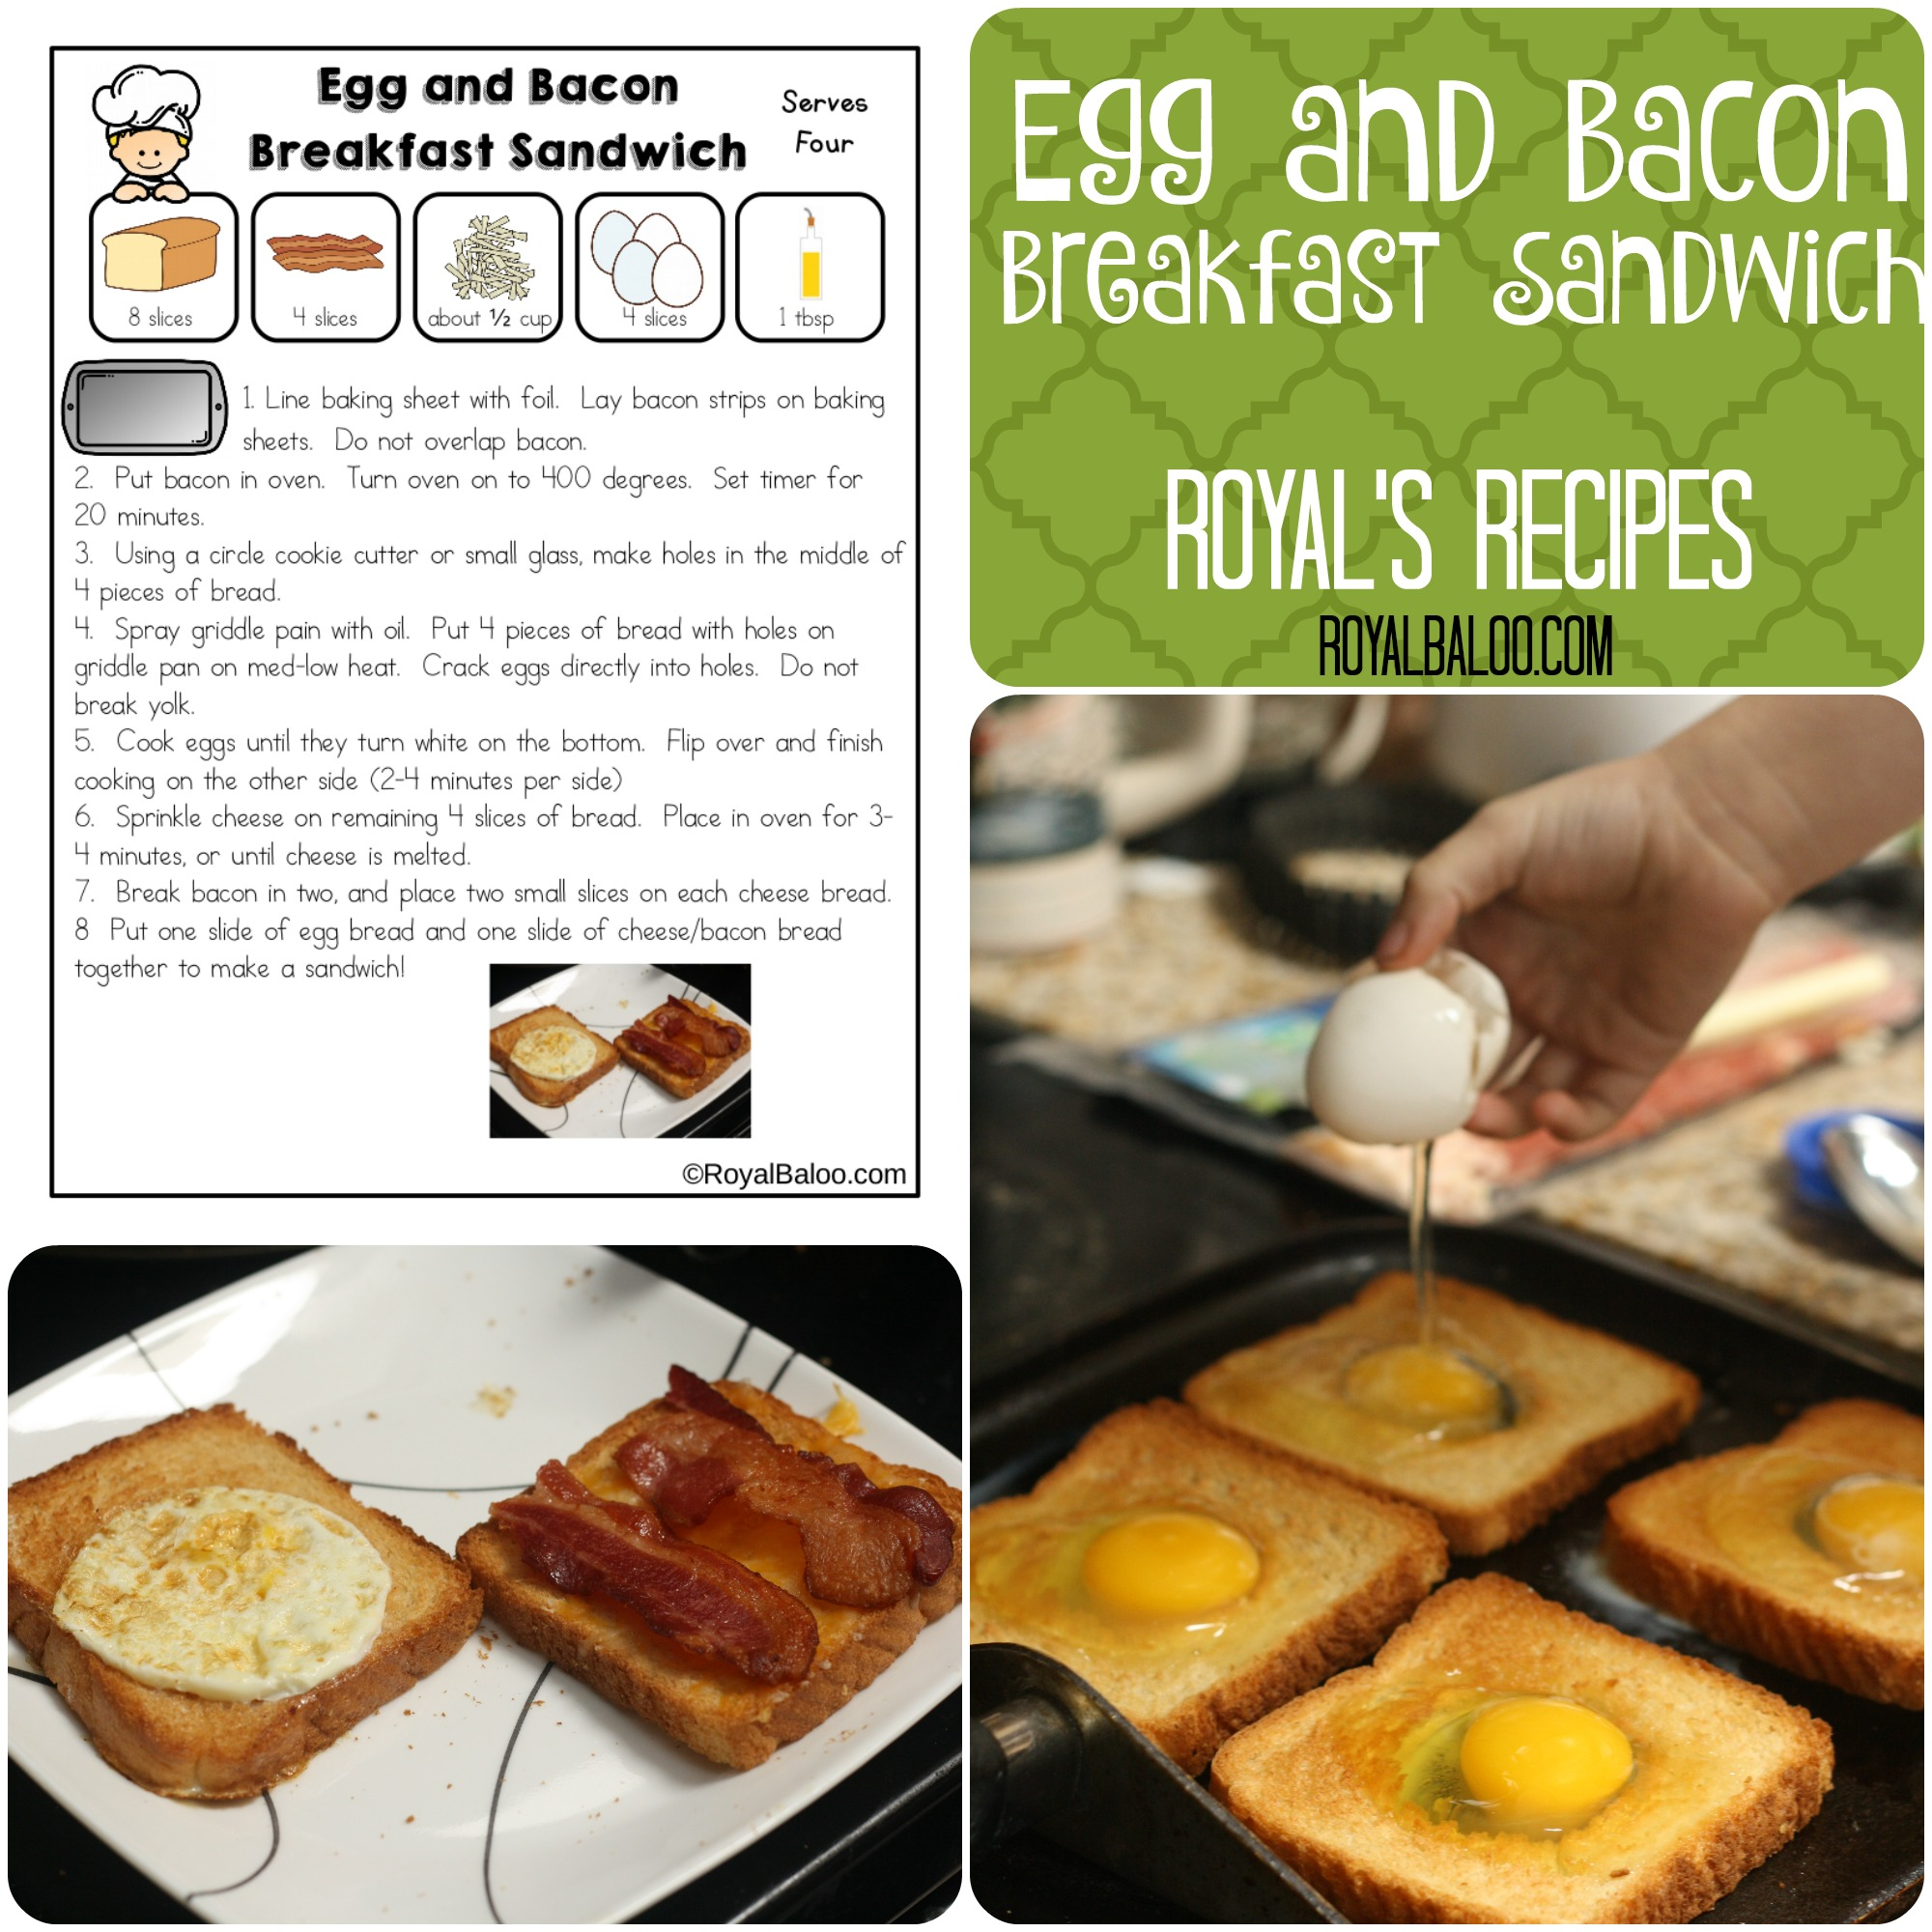 Royal's Recipes: Egg and Bacon Breakfast Sandwich. Recipes for Kids!